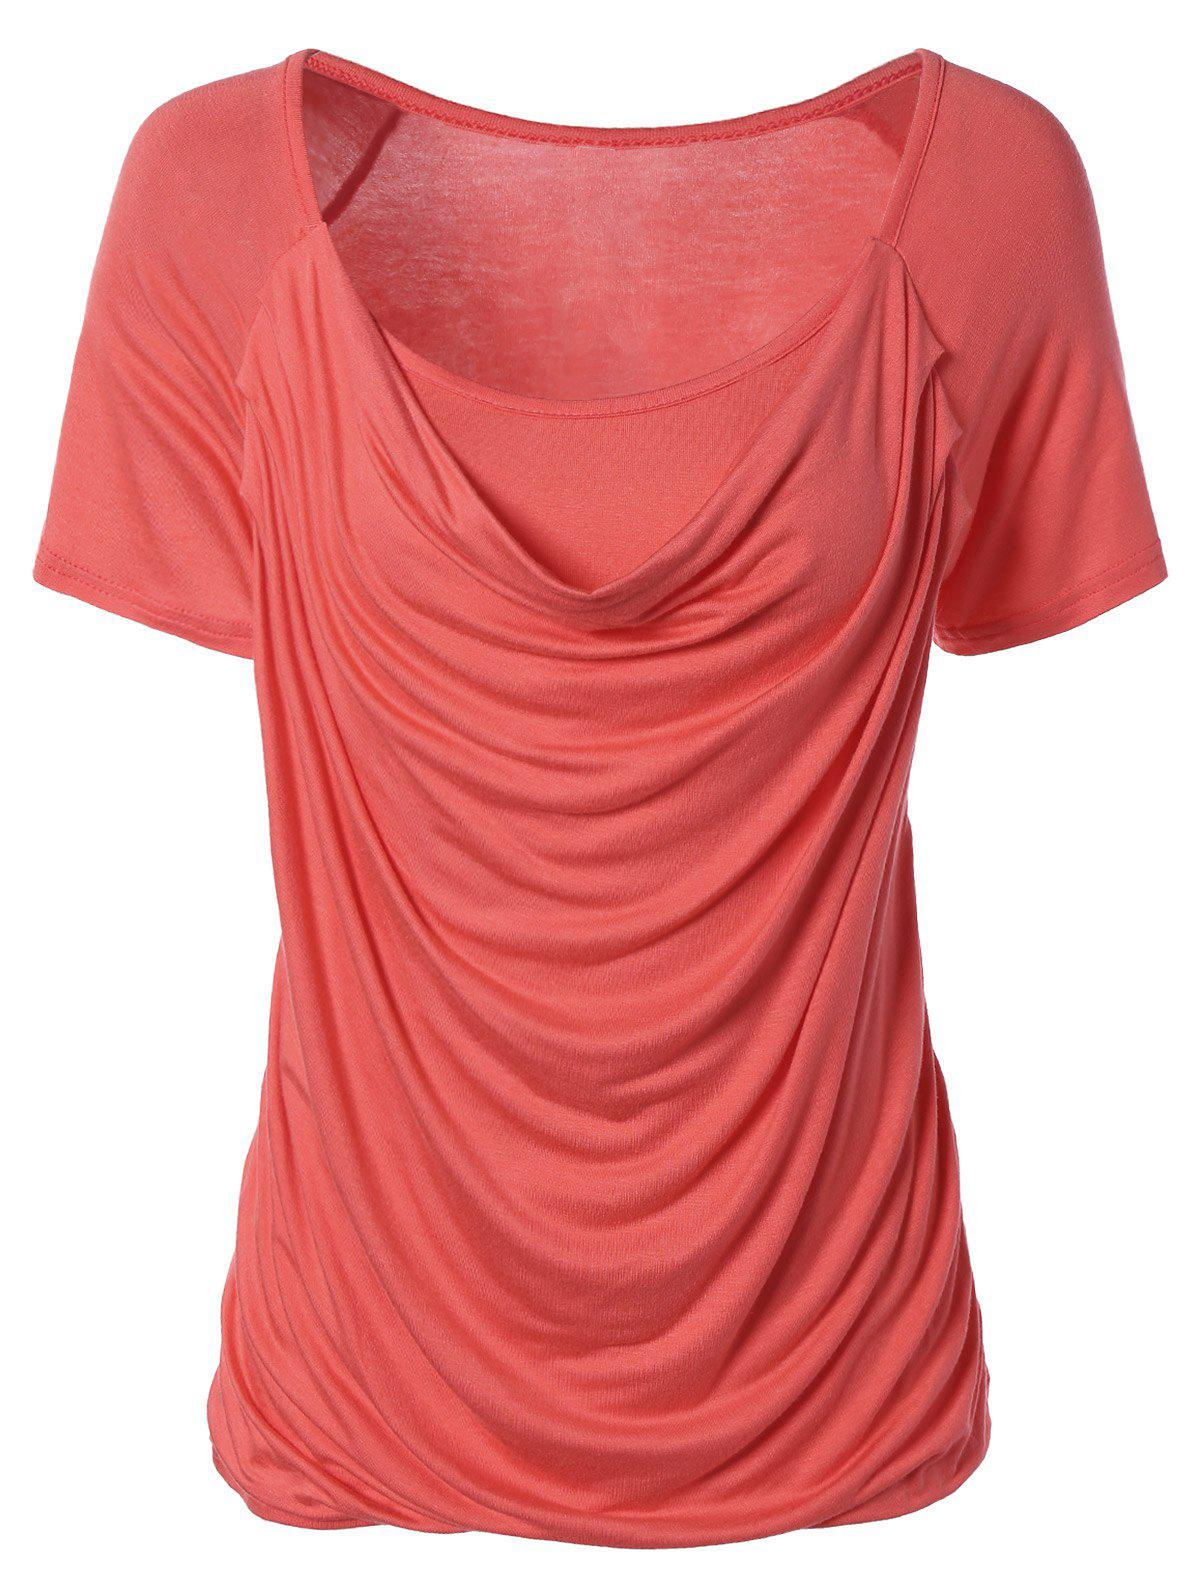 Ruched Plain Ruffled T-ShirtWOMEN<br><br>Size: XL; Color: WATERMELON RED; Material: Cotton Blends; Shirt Length: Regular; Sleeve Length: Short; Collar: Scoop Neck; Style: Fashion; Season: Summer; Pattern Type: Solid; Weight: 0.200kg; Package Contents: 1 x T-Shirt;